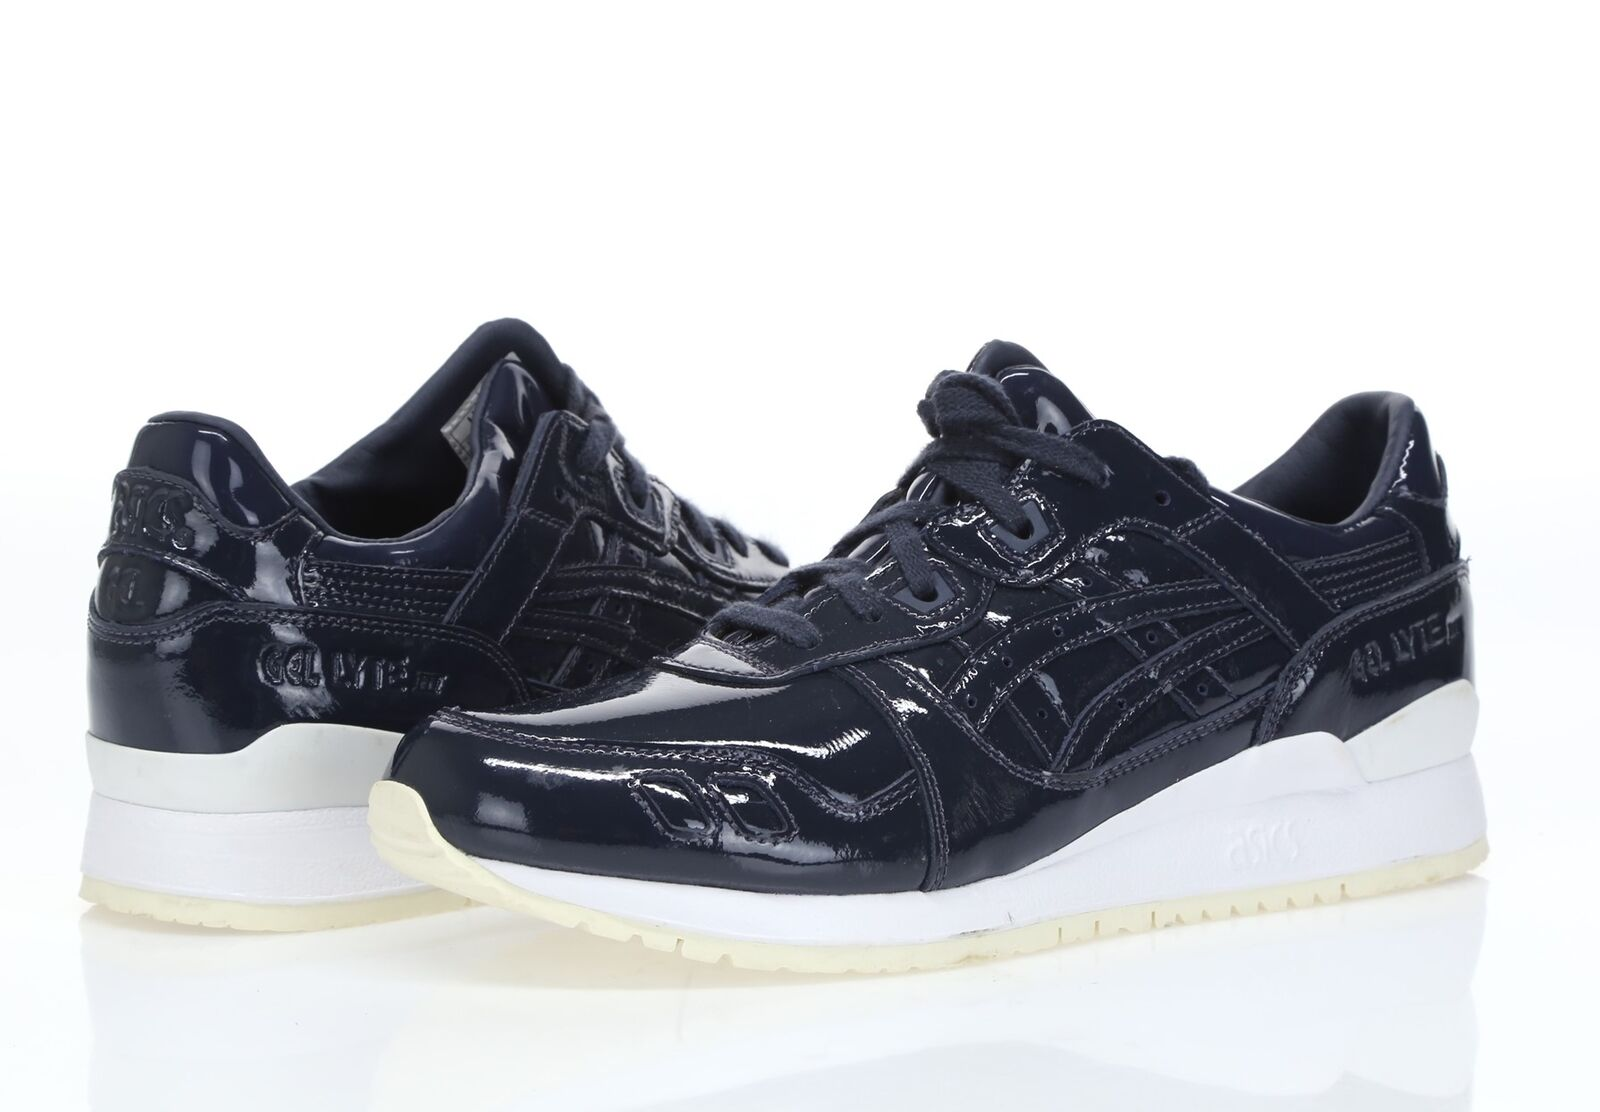 Asics Gel-Lyte III hommes navy Bleu patent leather sneakers sz. 9.5 ( 43.5 )